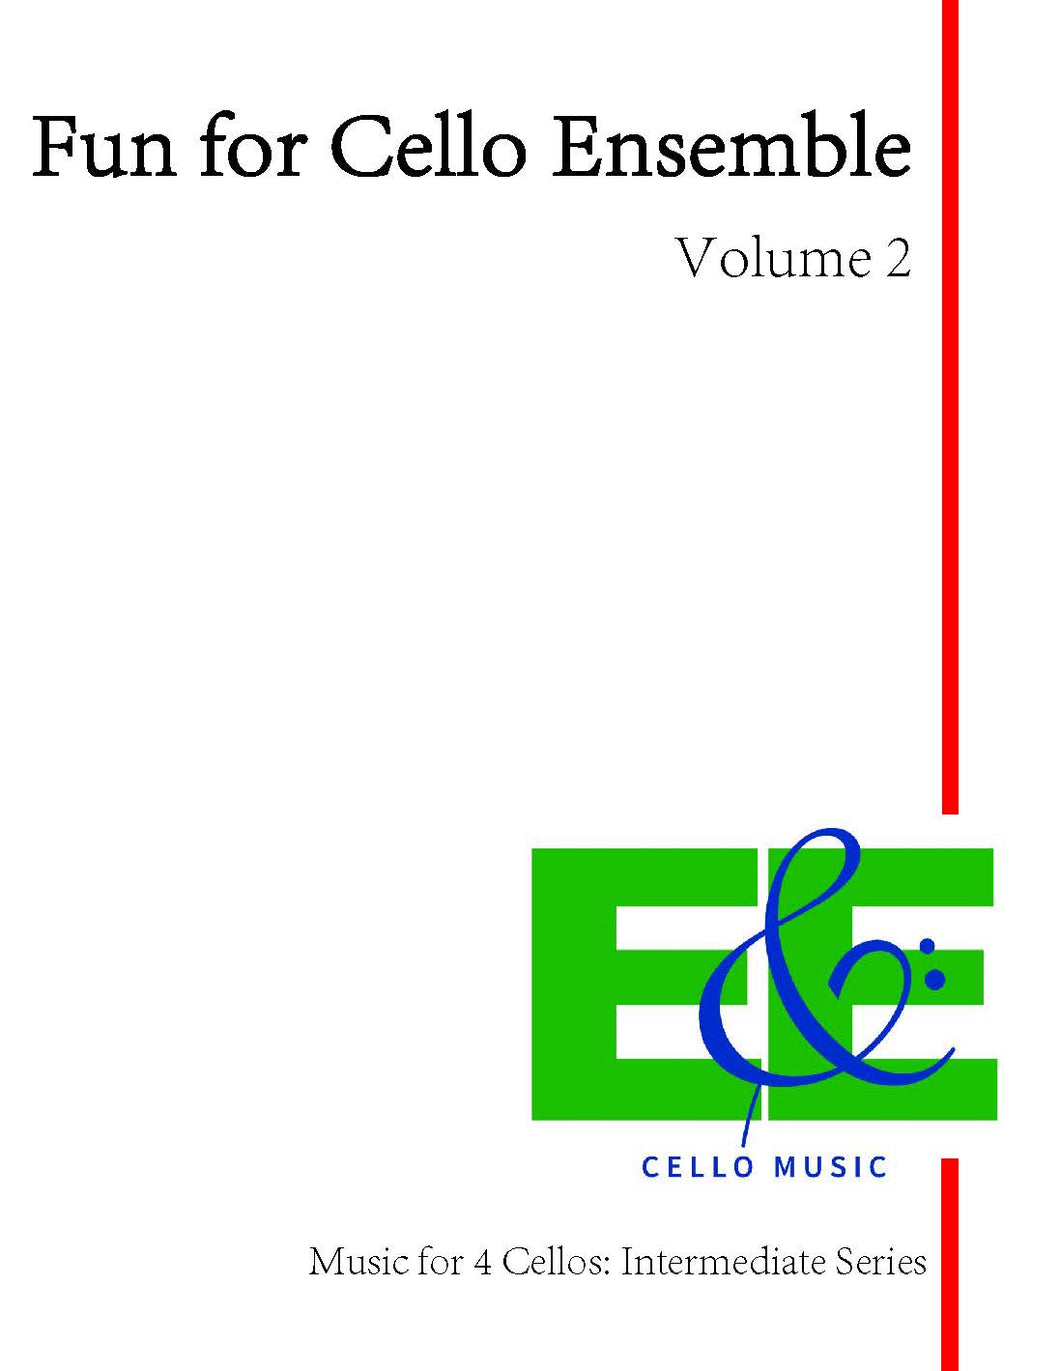 Fun for Cello Ensemble Vol. 2<br>Music for 4 Cellos:<br>Intermediate Series